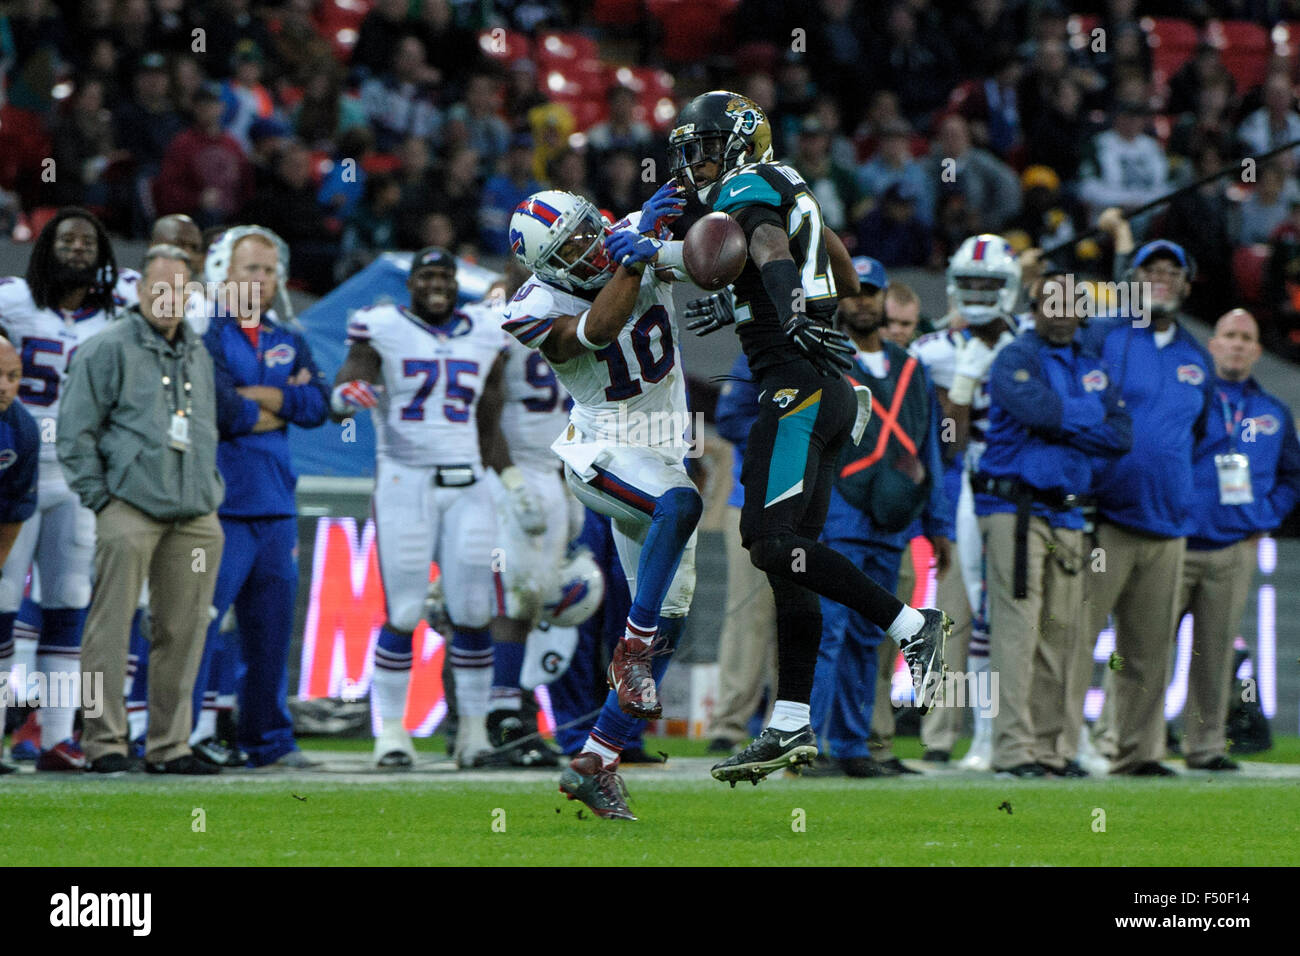 London, UK. 25th Oct, 2015. NFL International Series. Buffalo Bills versus Jacksonville Jaguars. Jaguars Corner - Stock Image